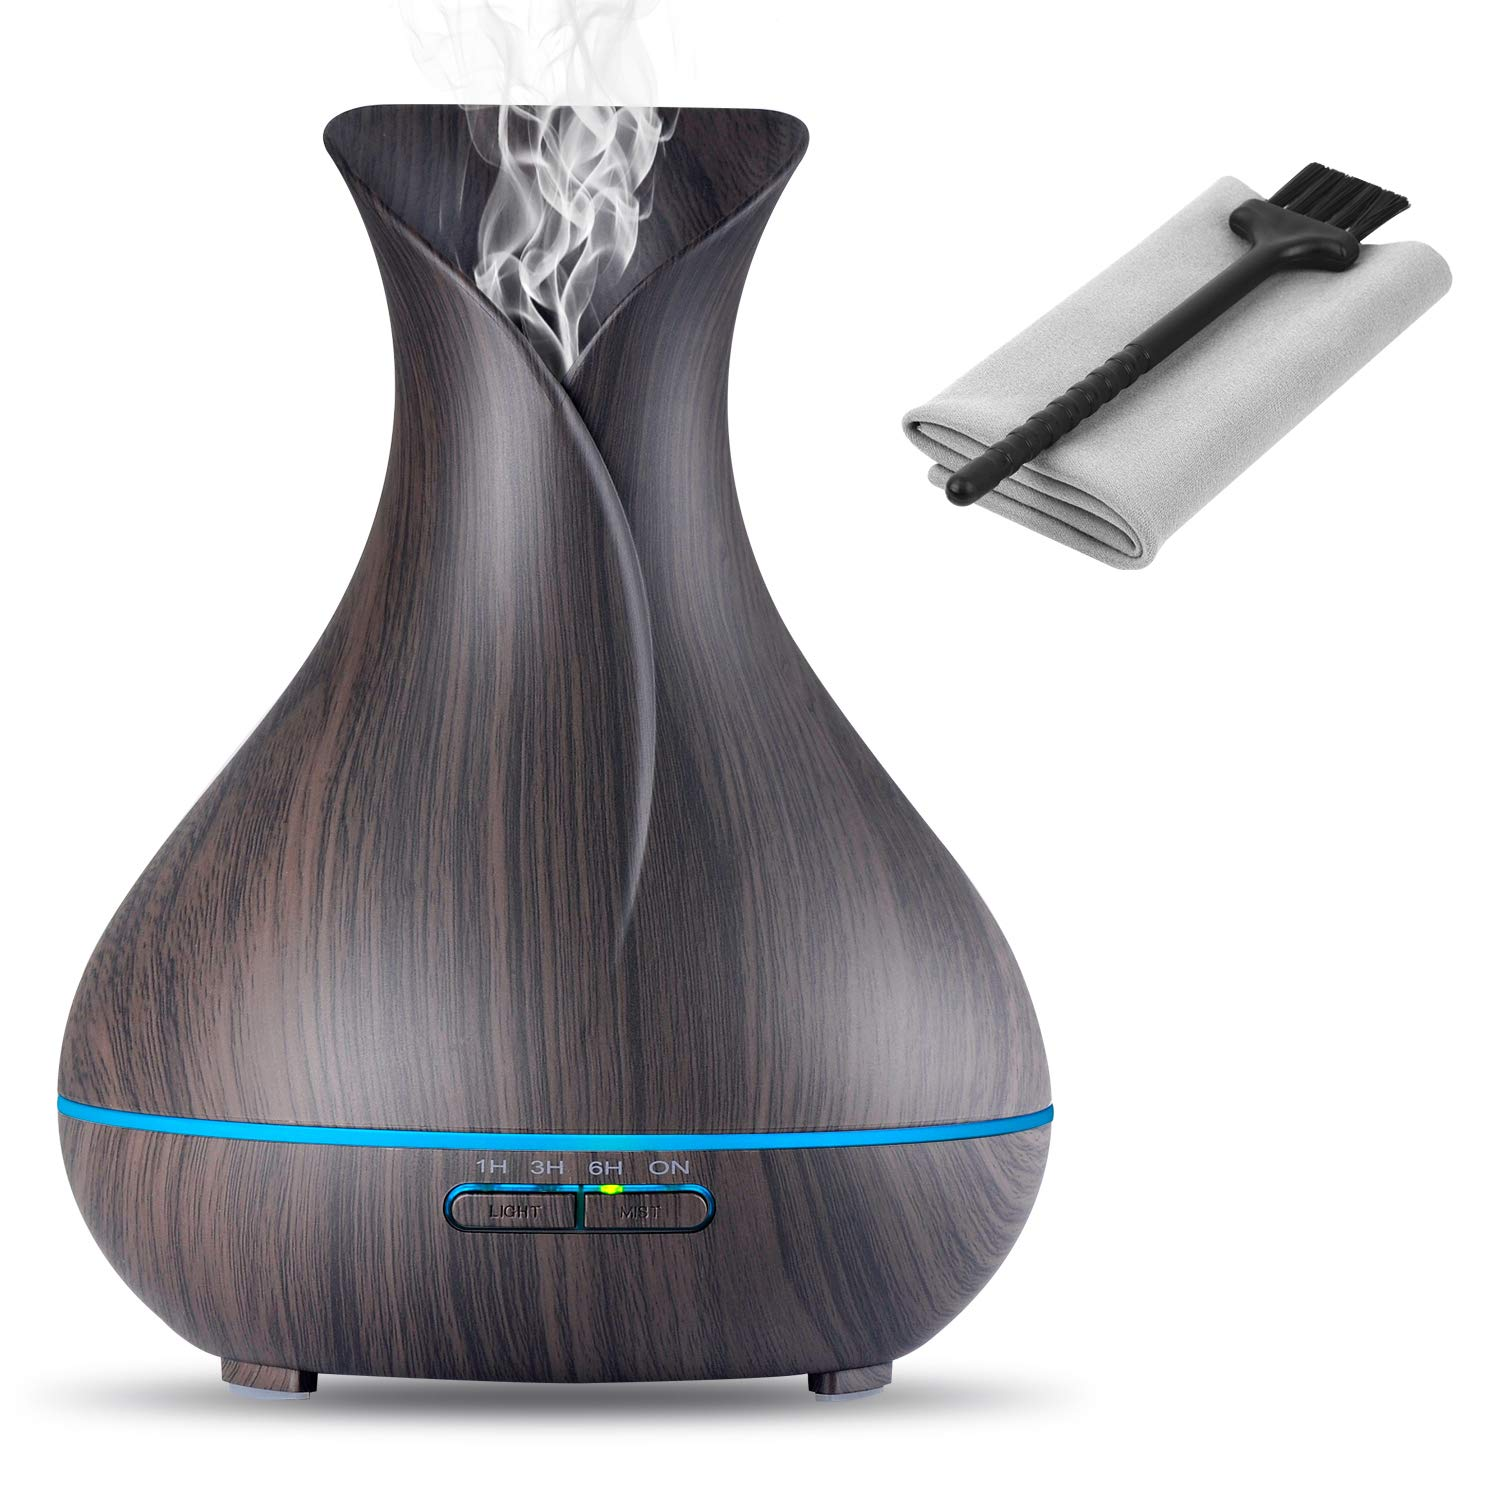 OliveTech Aroma Essential Oil Diffuser, 400ml Ultrasonic Cool Mist Humidifier with Color LED Lights Changing for Home, Yoga, Office, Spa, Bedroom, Baby Room - Wood Grain by OliveTech